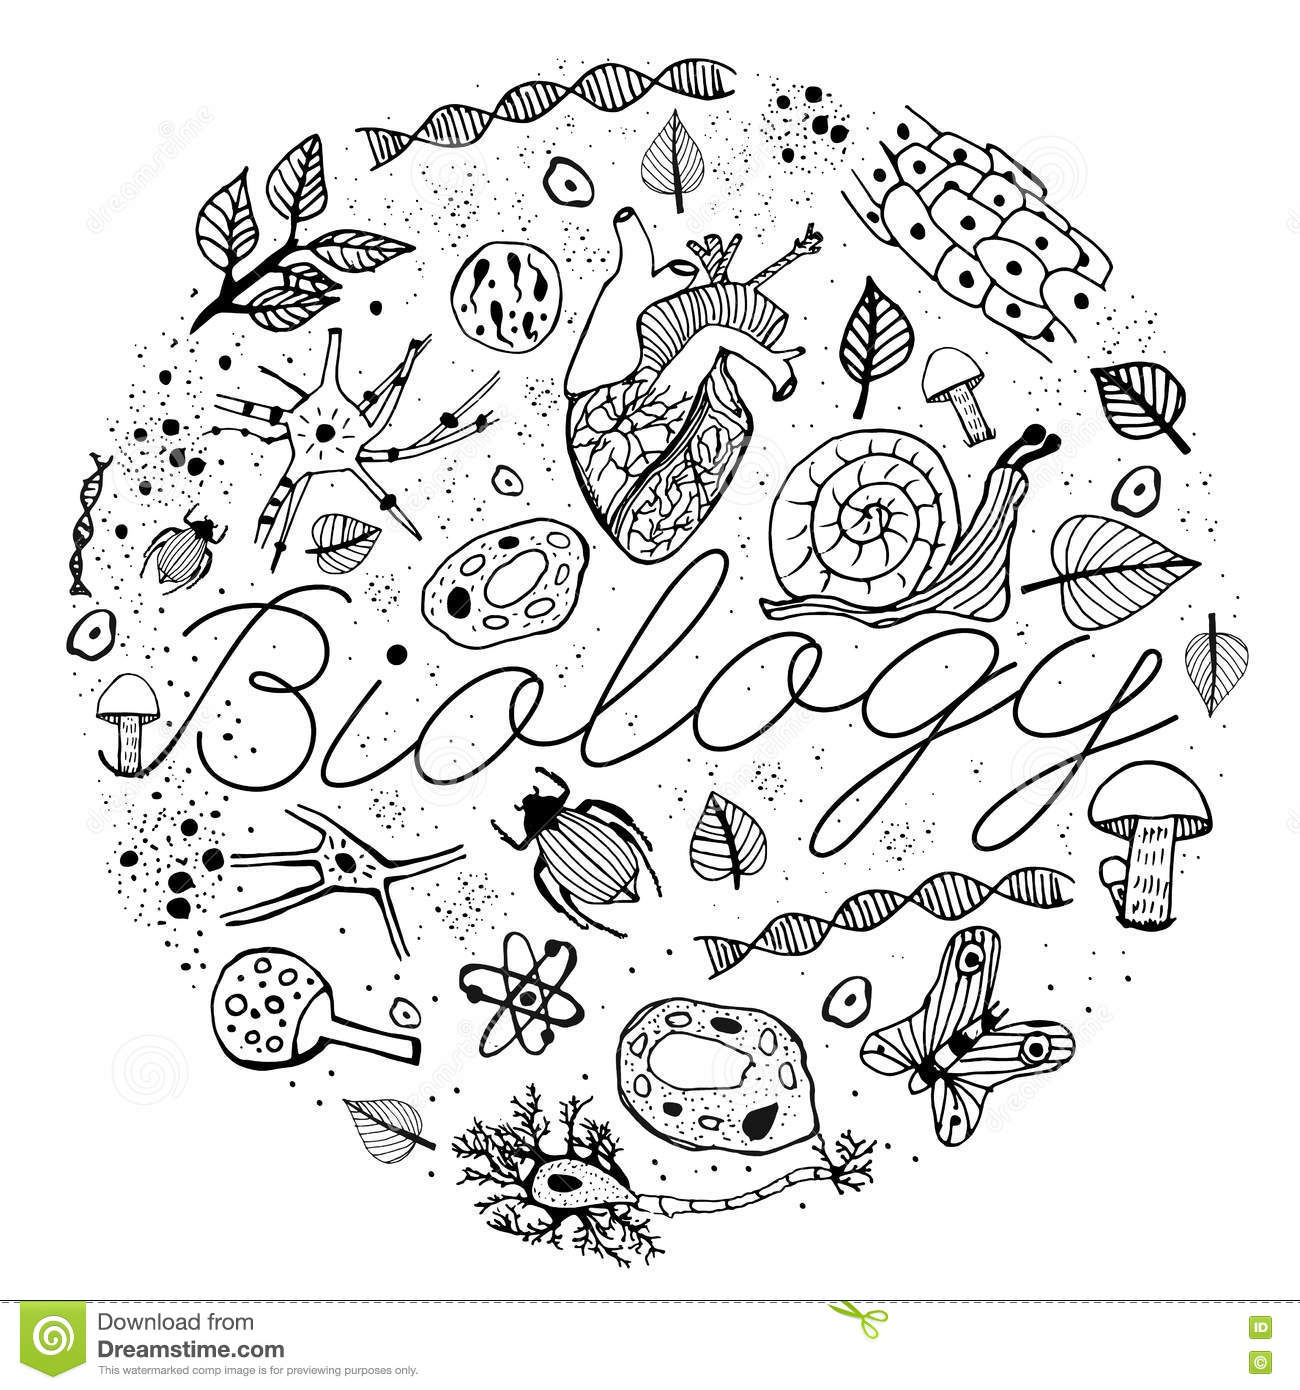 Biology Vector Doodles Stock Vector Illustration Of